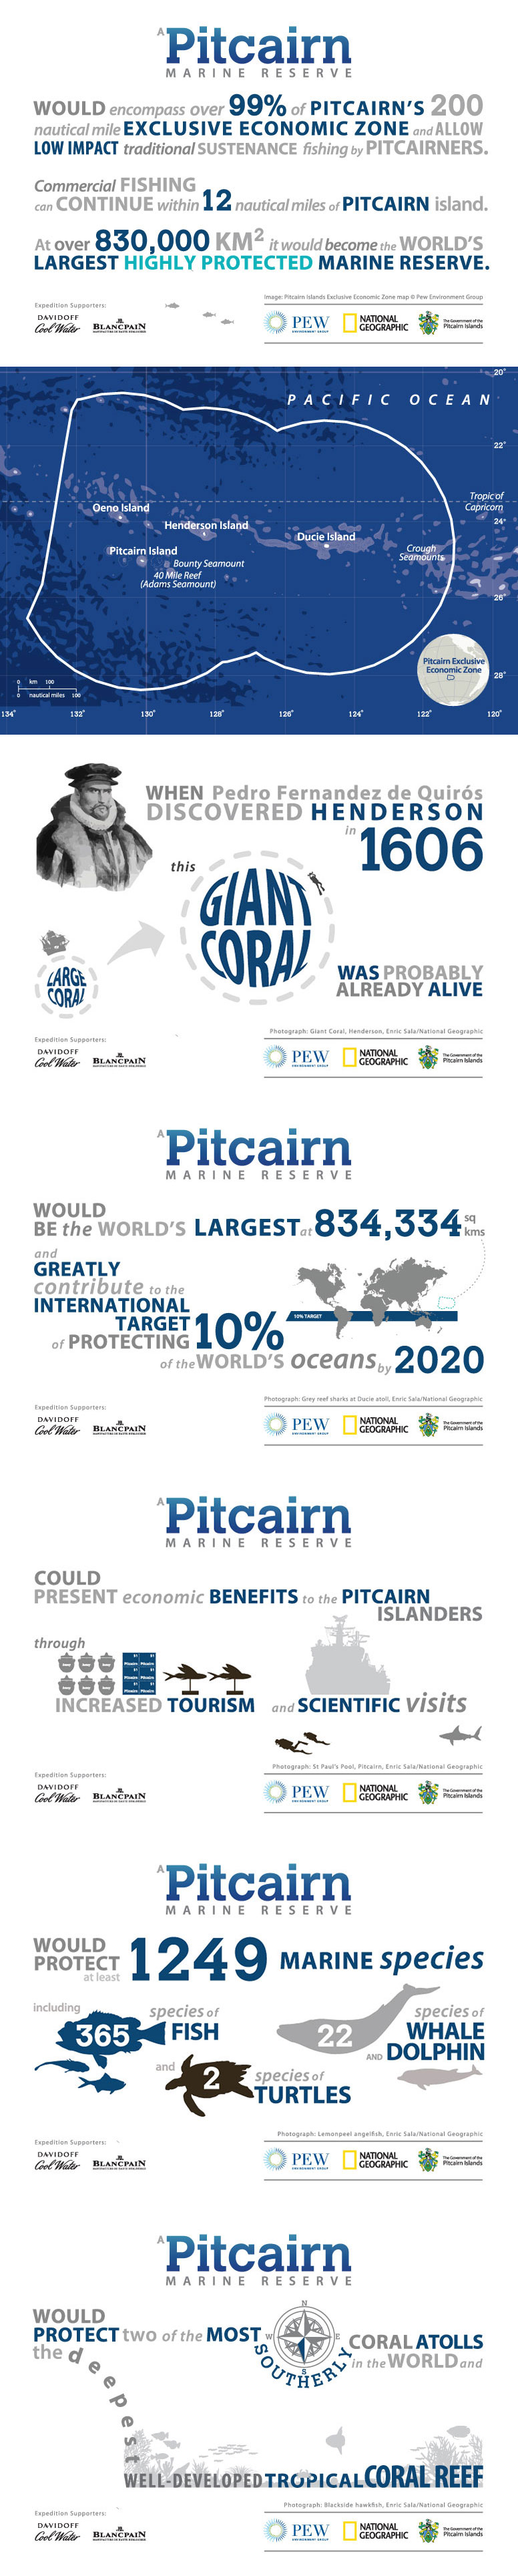 Pitcairn Marine Reserve Infographic